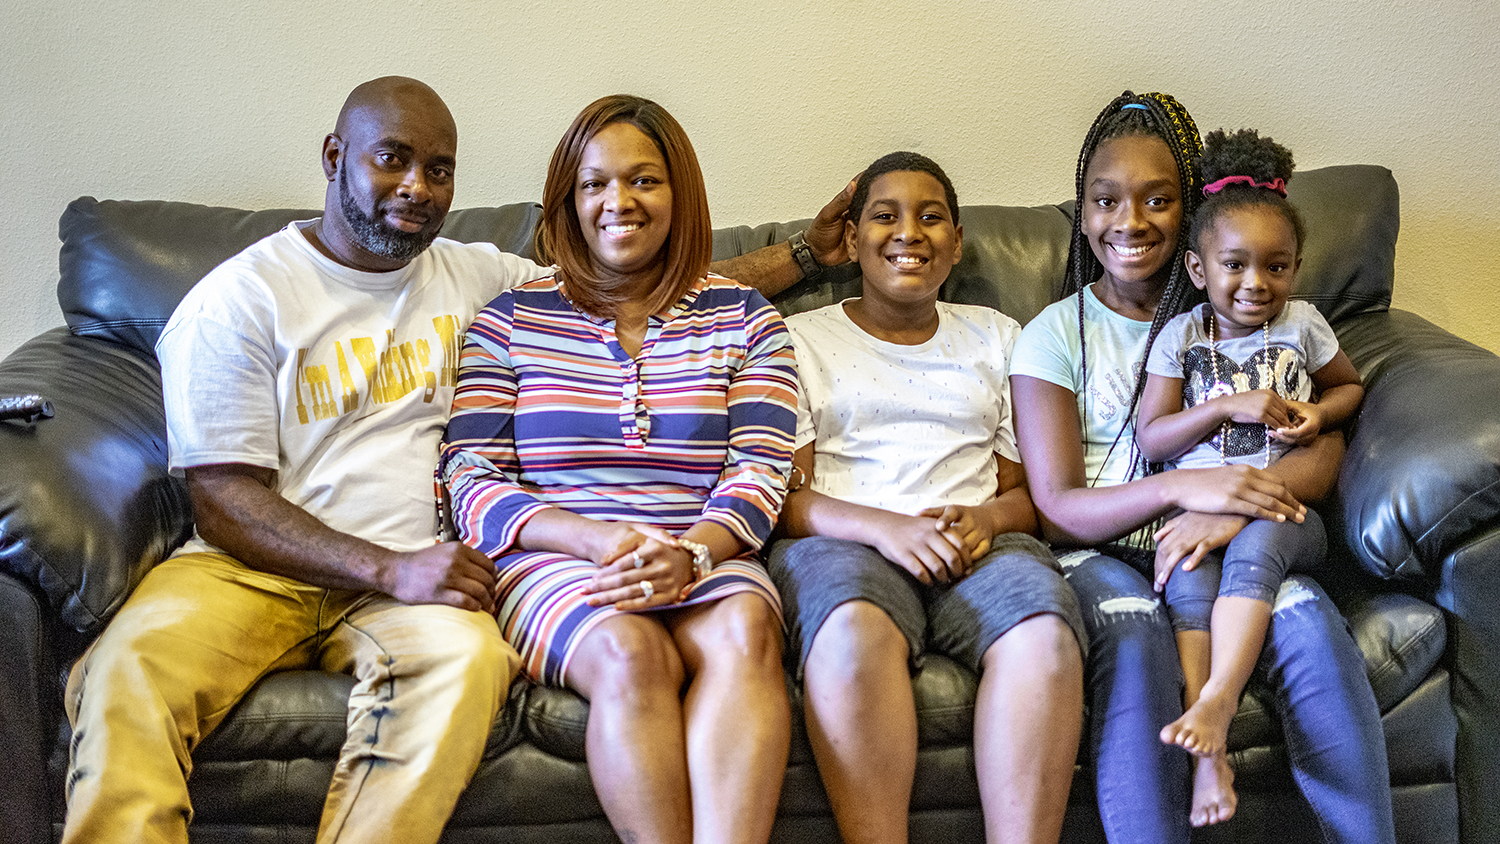 the survivor, his wife and children sit on a couch smiling